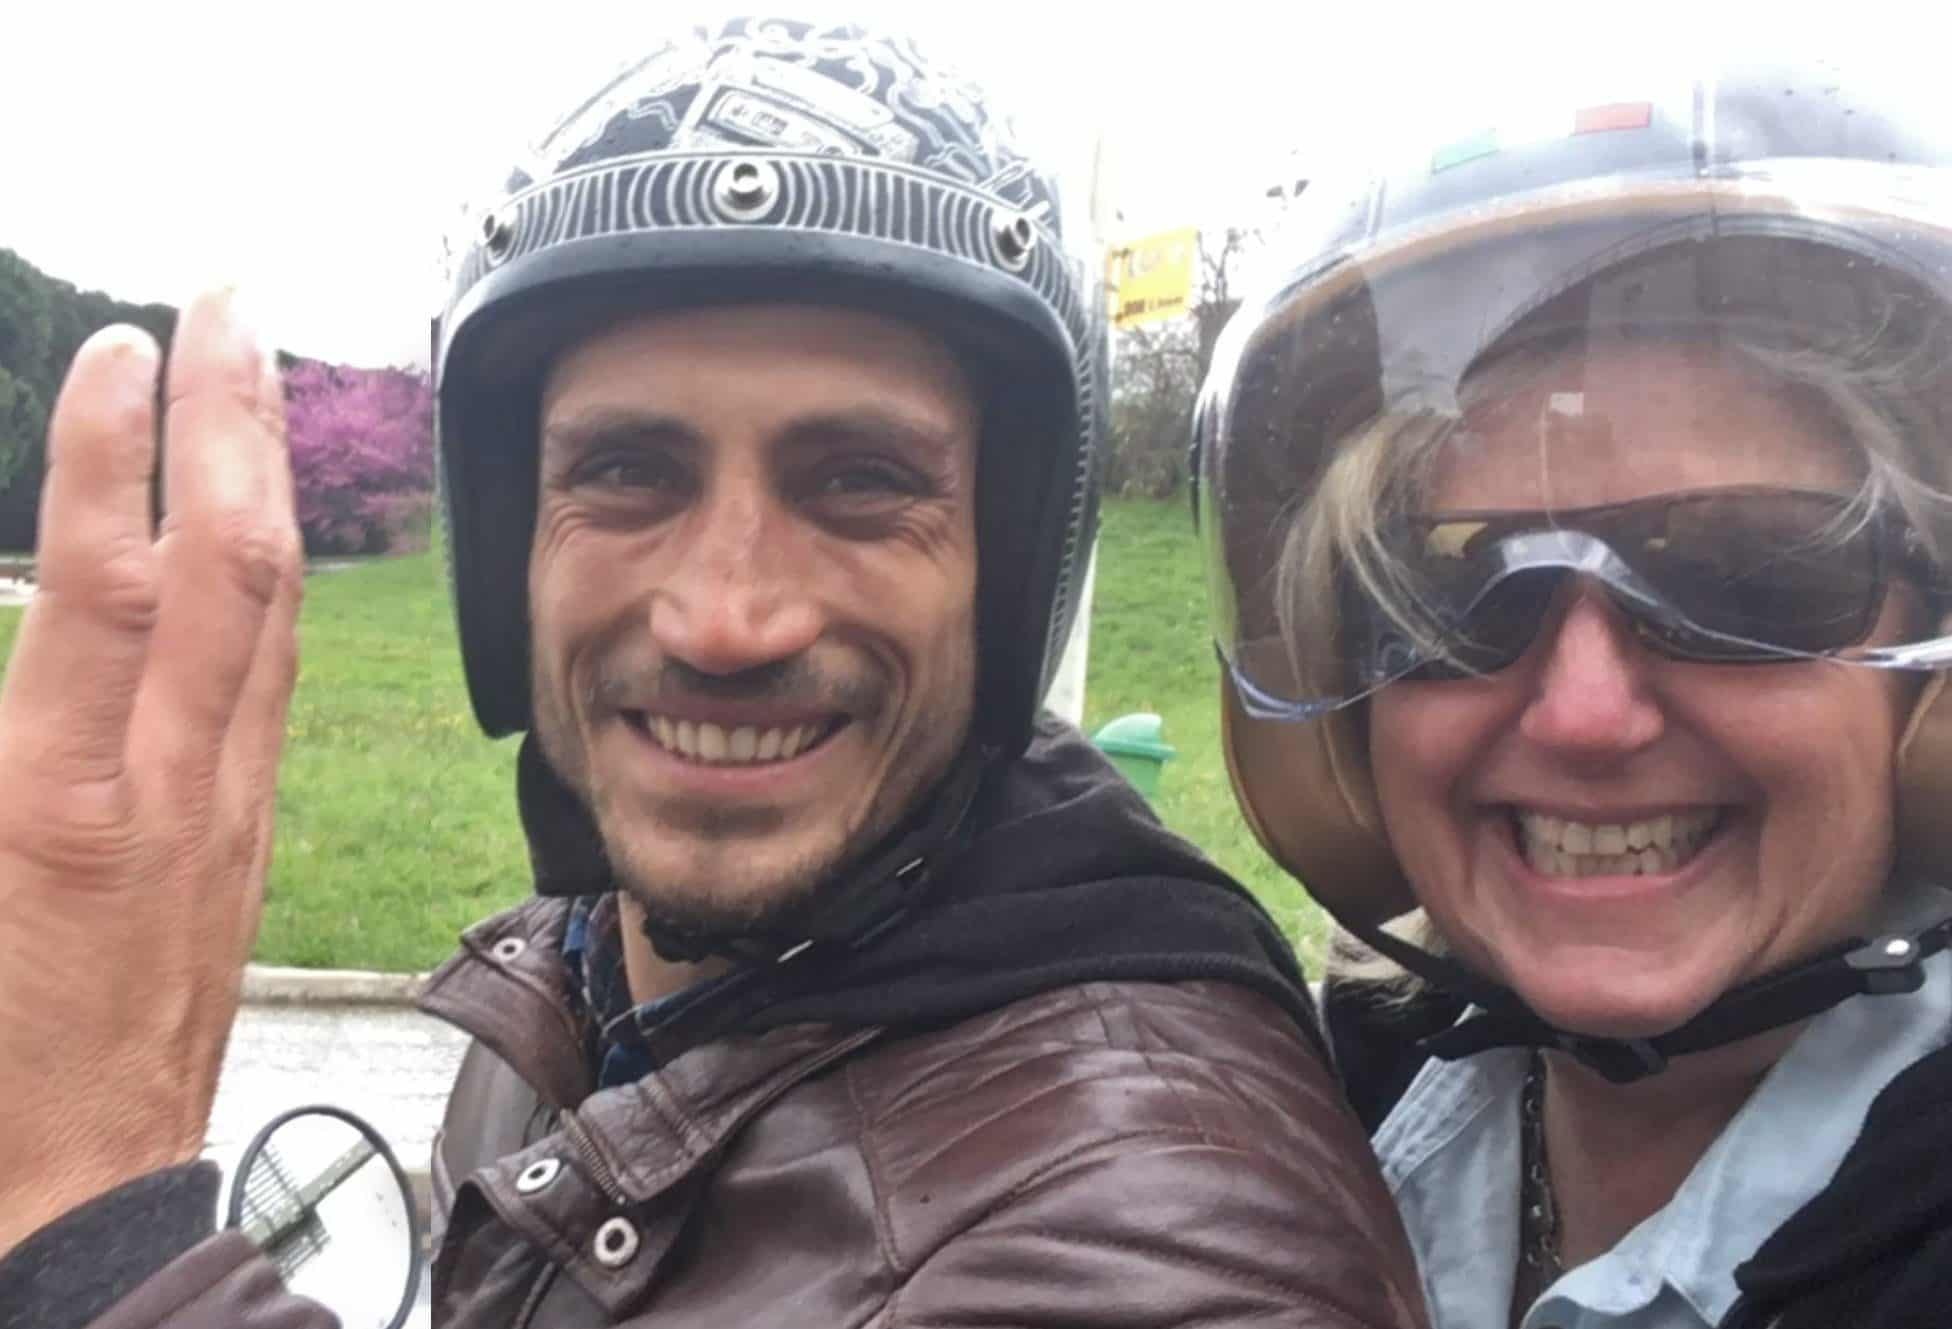 Melanie-CEO-Rare-Finds-Travel-on-scooter-in-Portugal-with-Marco